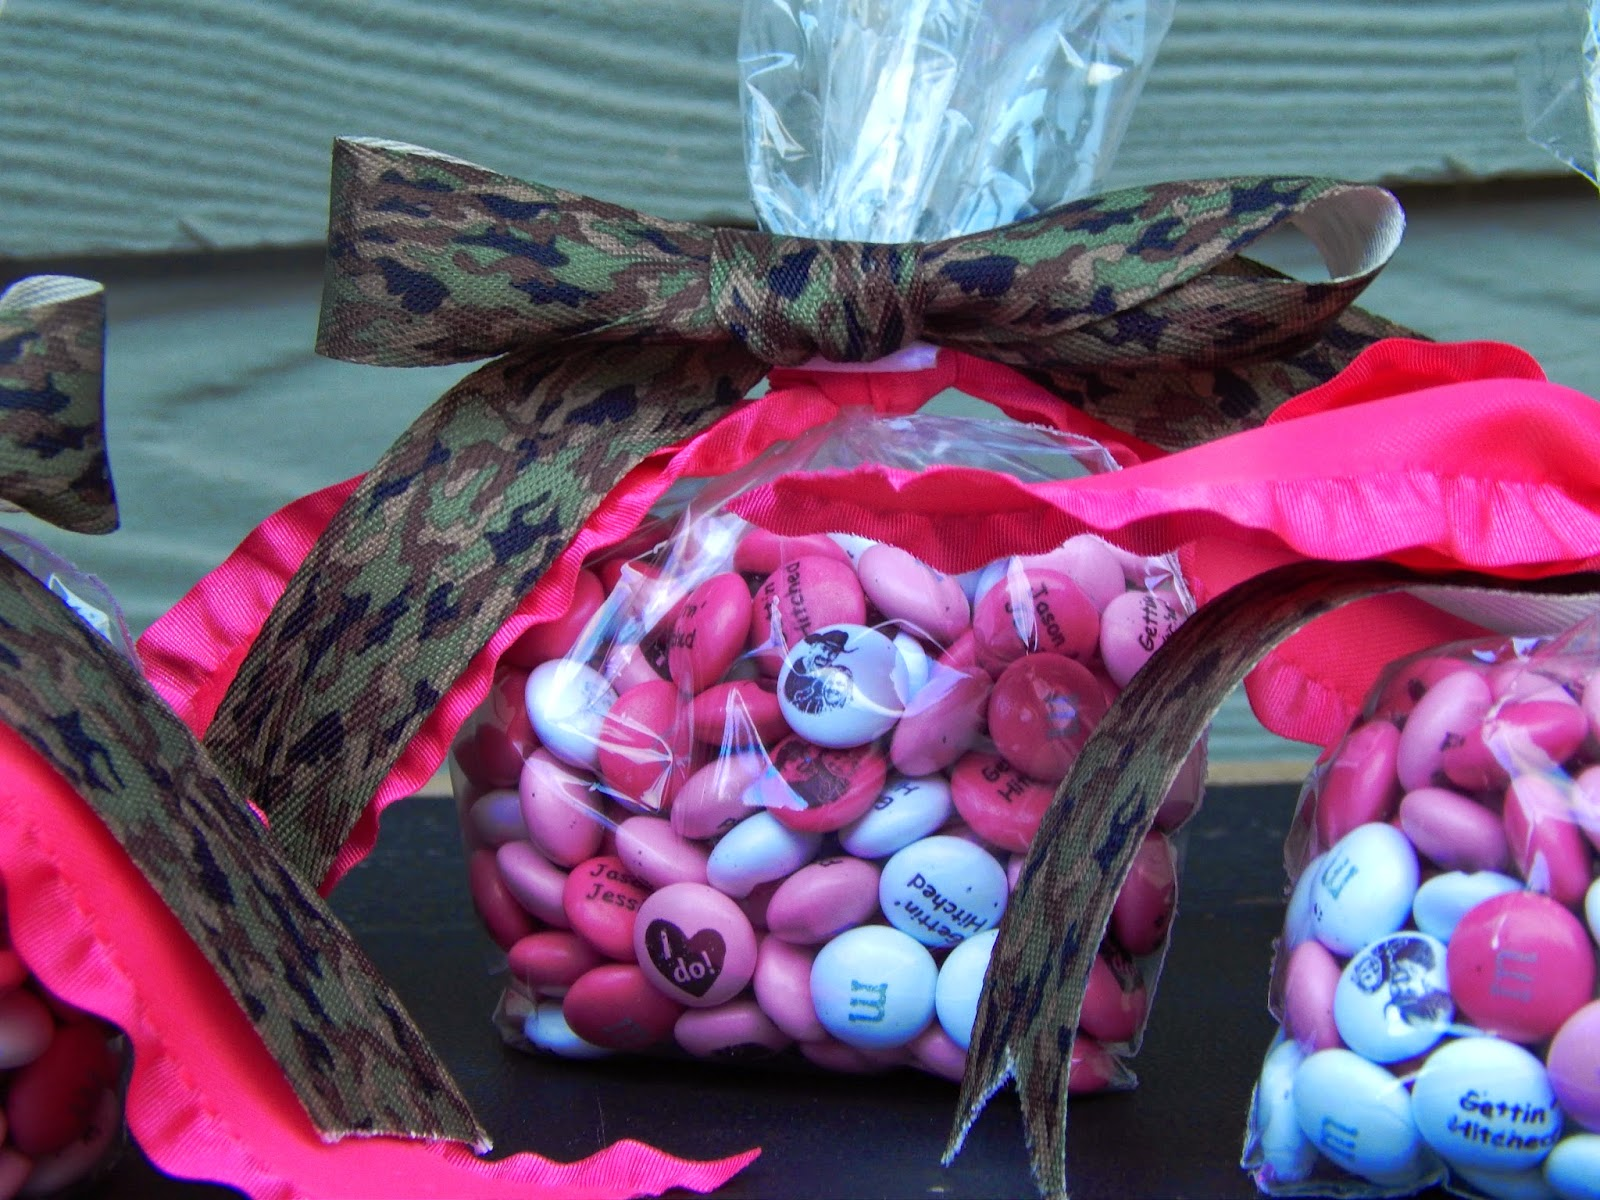 Gift Ideas For Mc At Weddings: Melissa Kaylene: Cute Bridal Shower Gift Idea With My M&M's